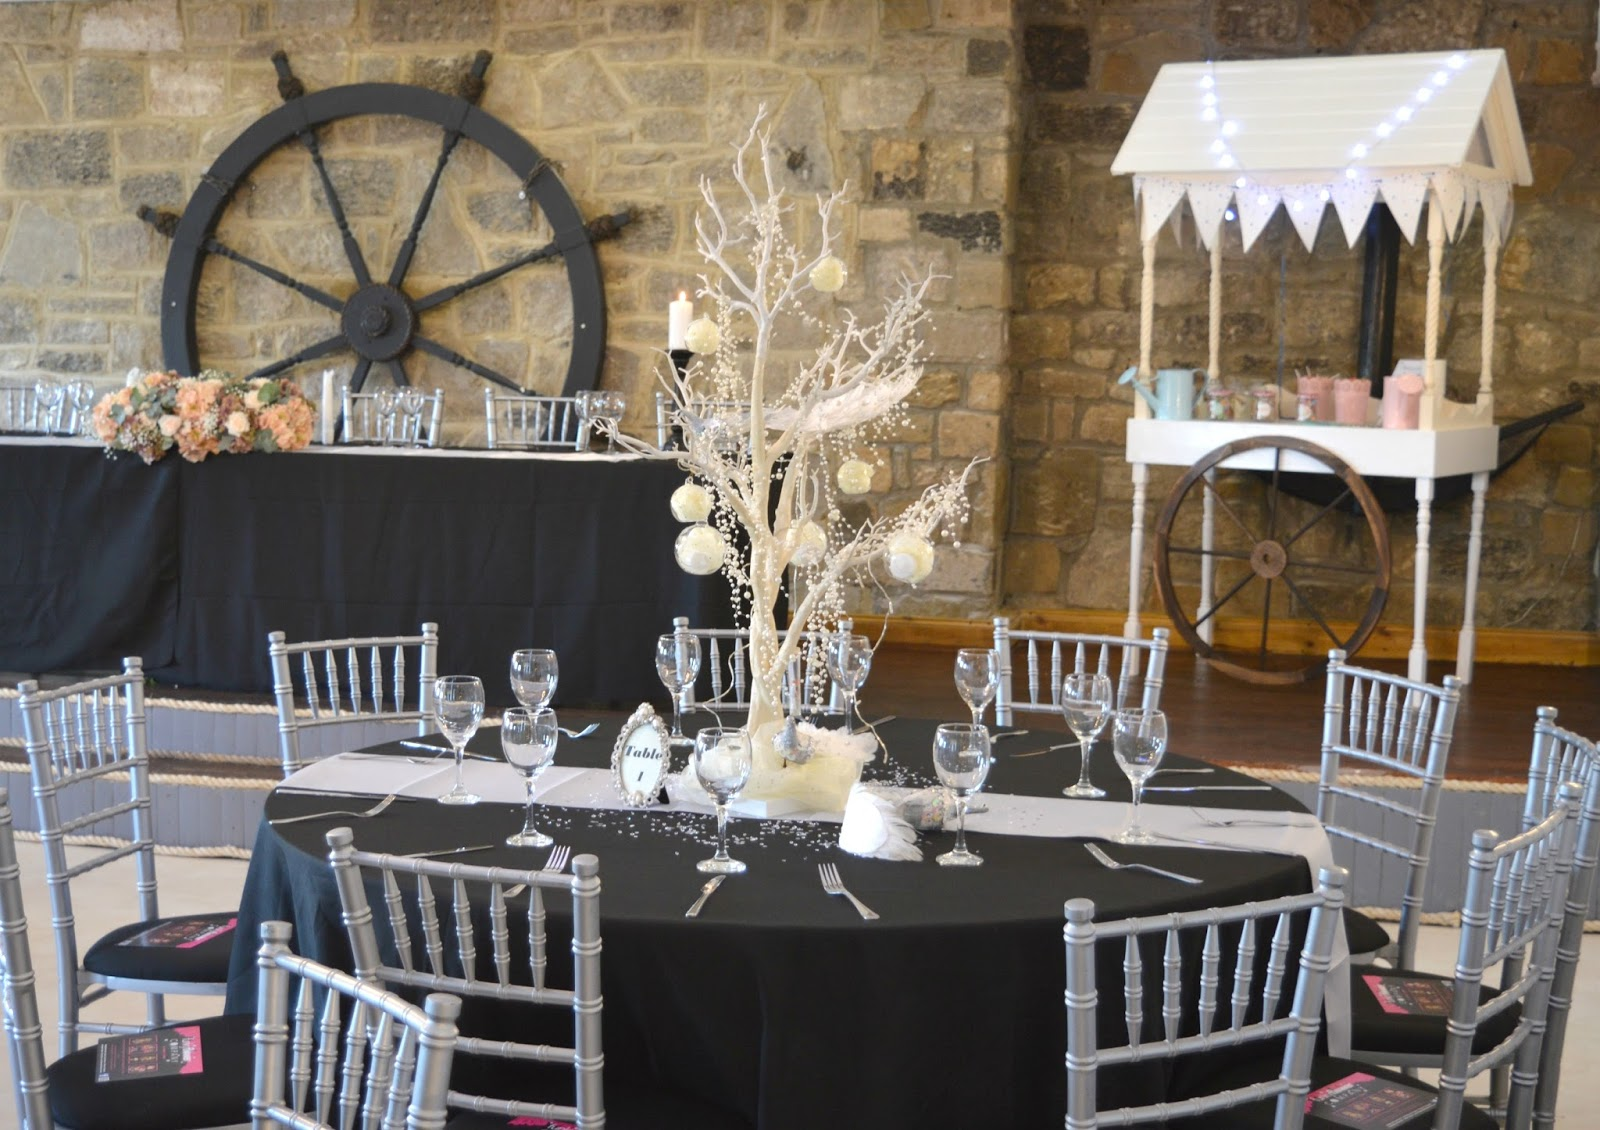 Weddings at Webster's Ropery, Sunderland: A North East Wedding Venue